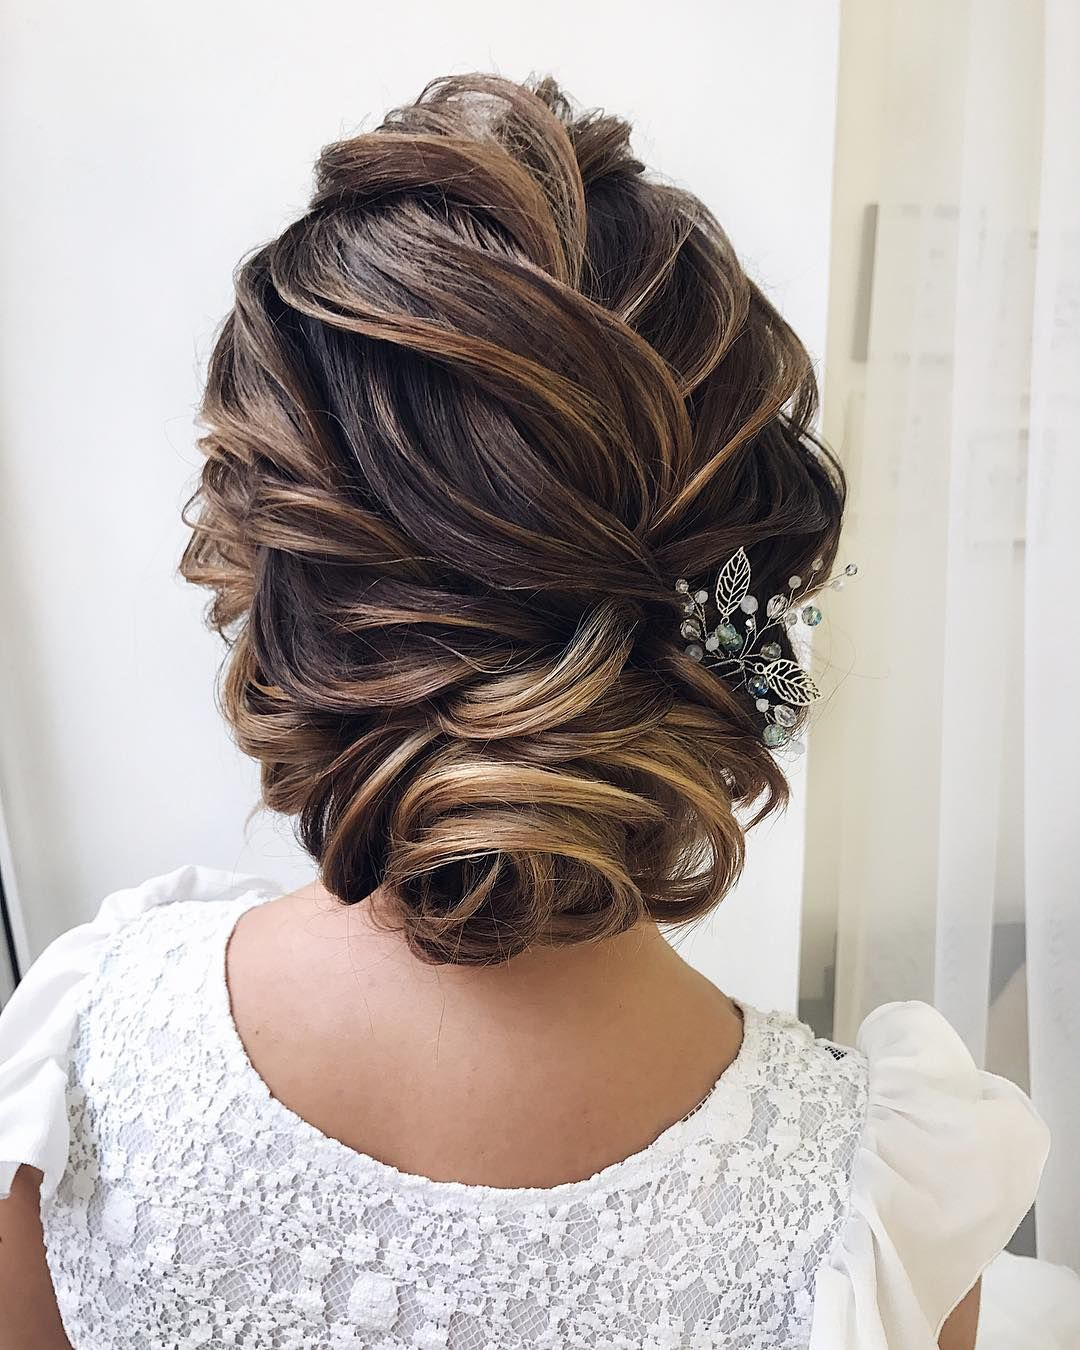 Textured wedding updo hairstyle ,messy updo wedding hairstyles ,chignon , messy updo hairstyles ...